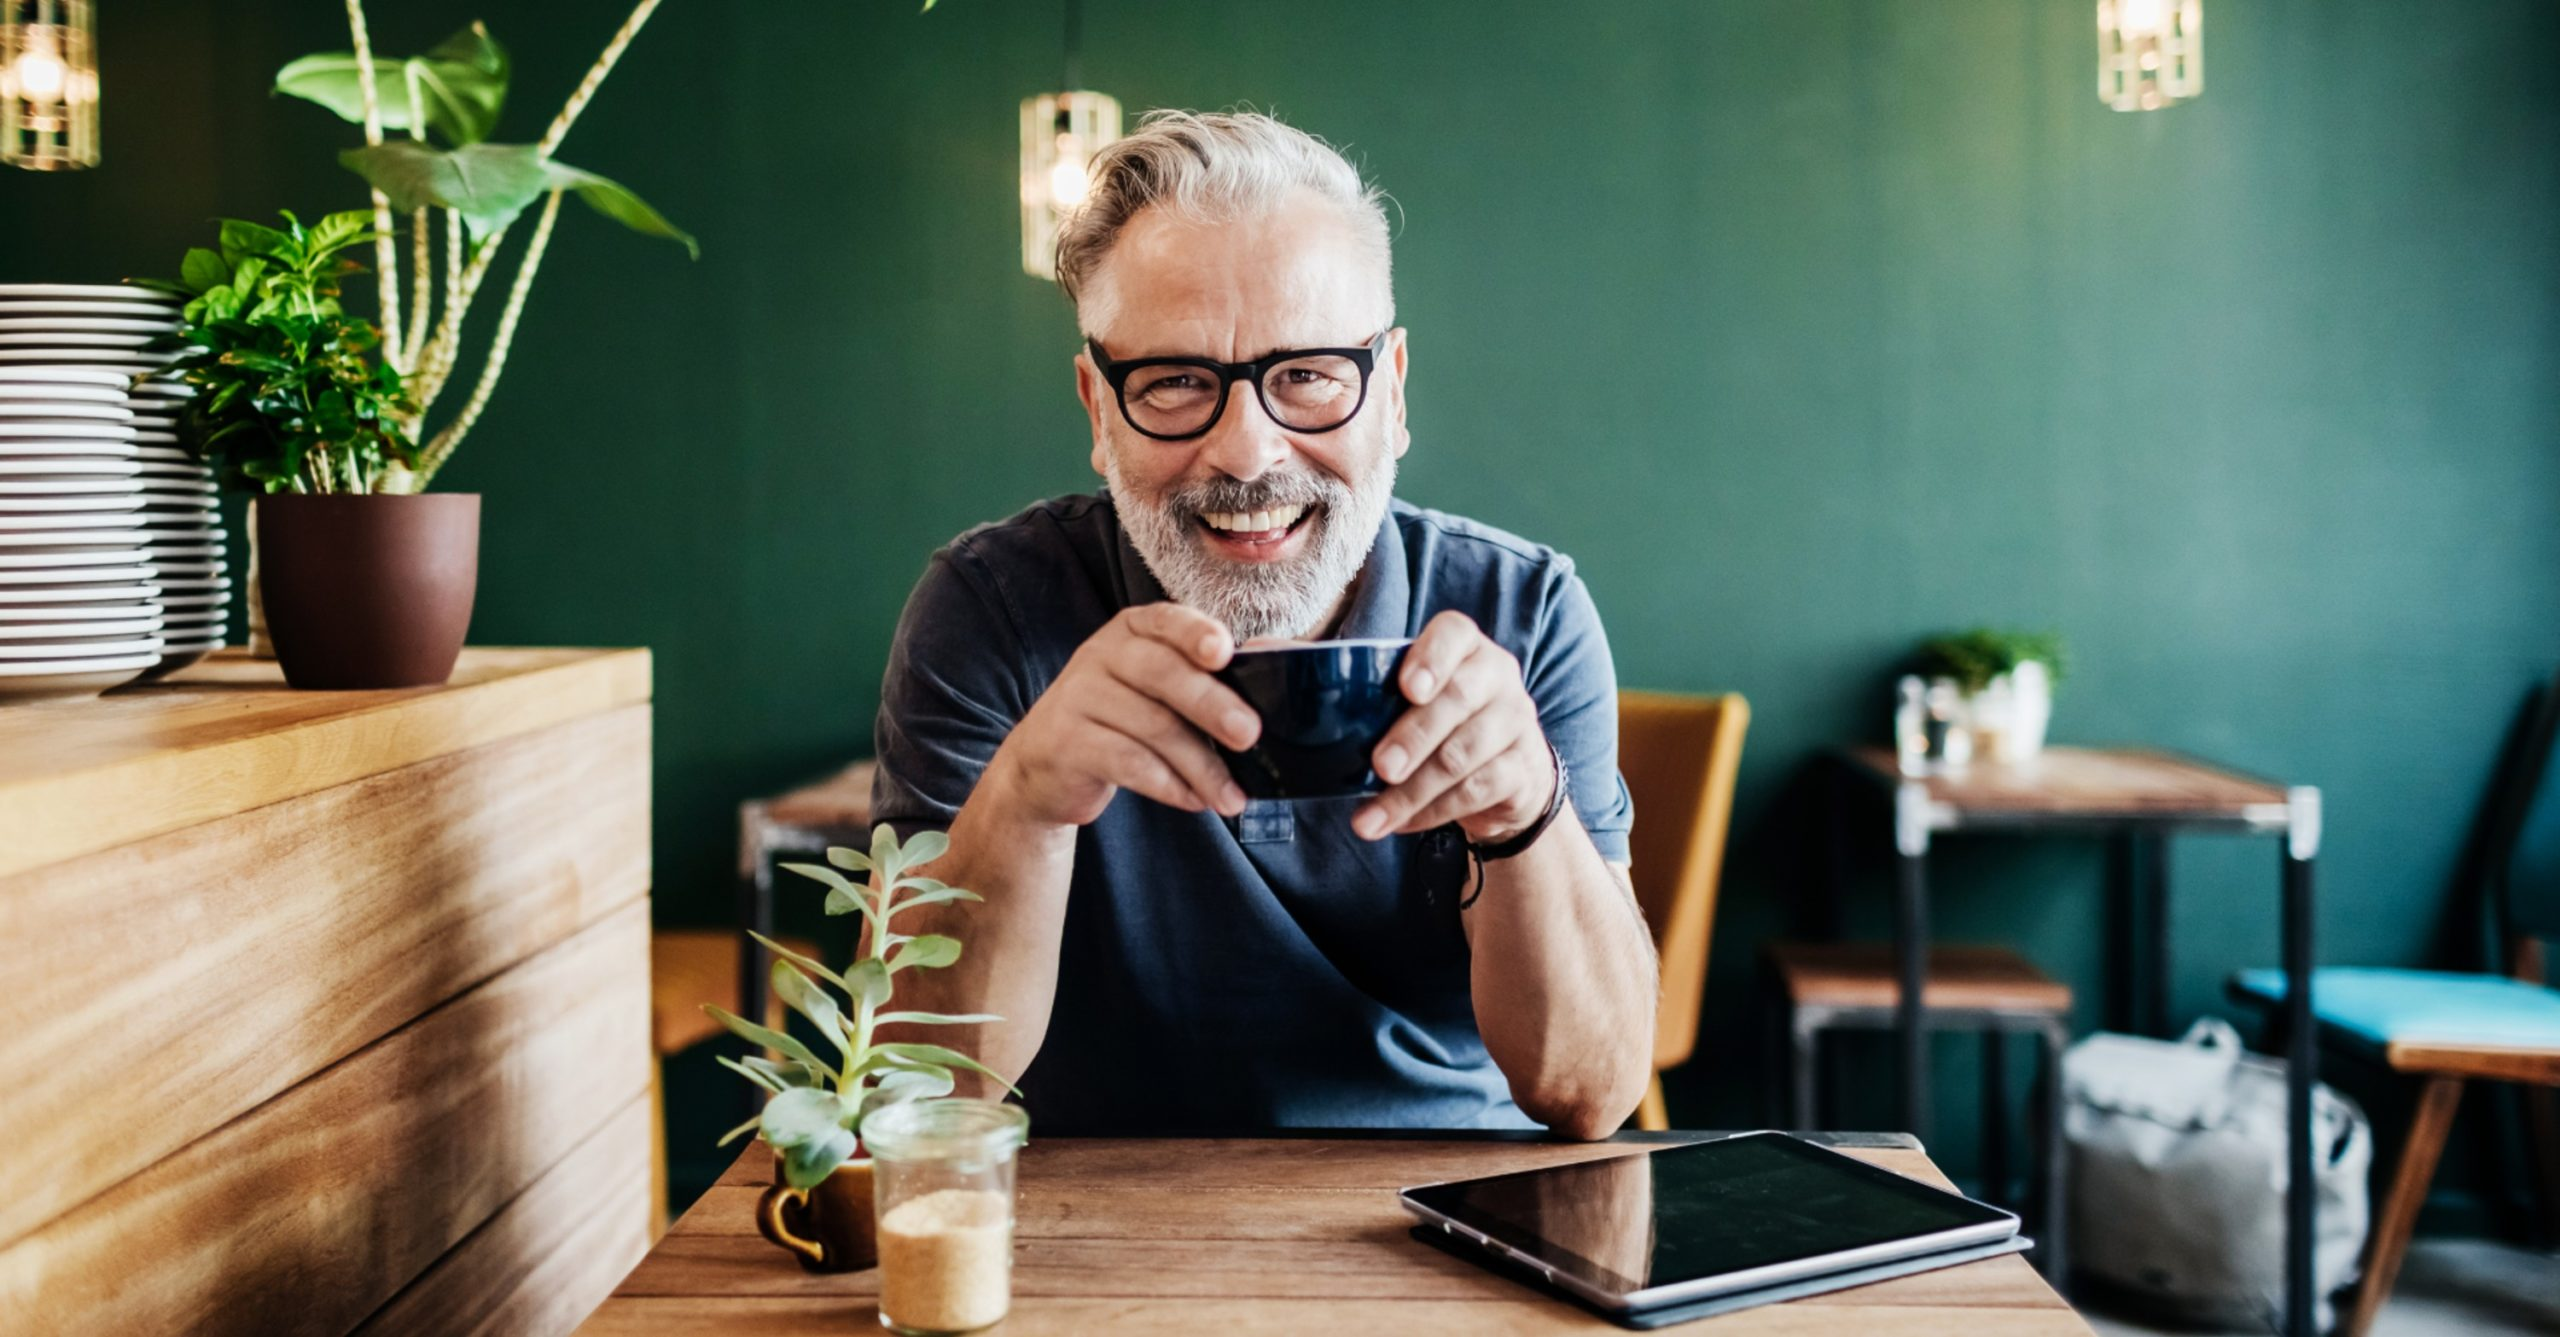 How to create work/life boundaries as a small business owner | Prospa NZ